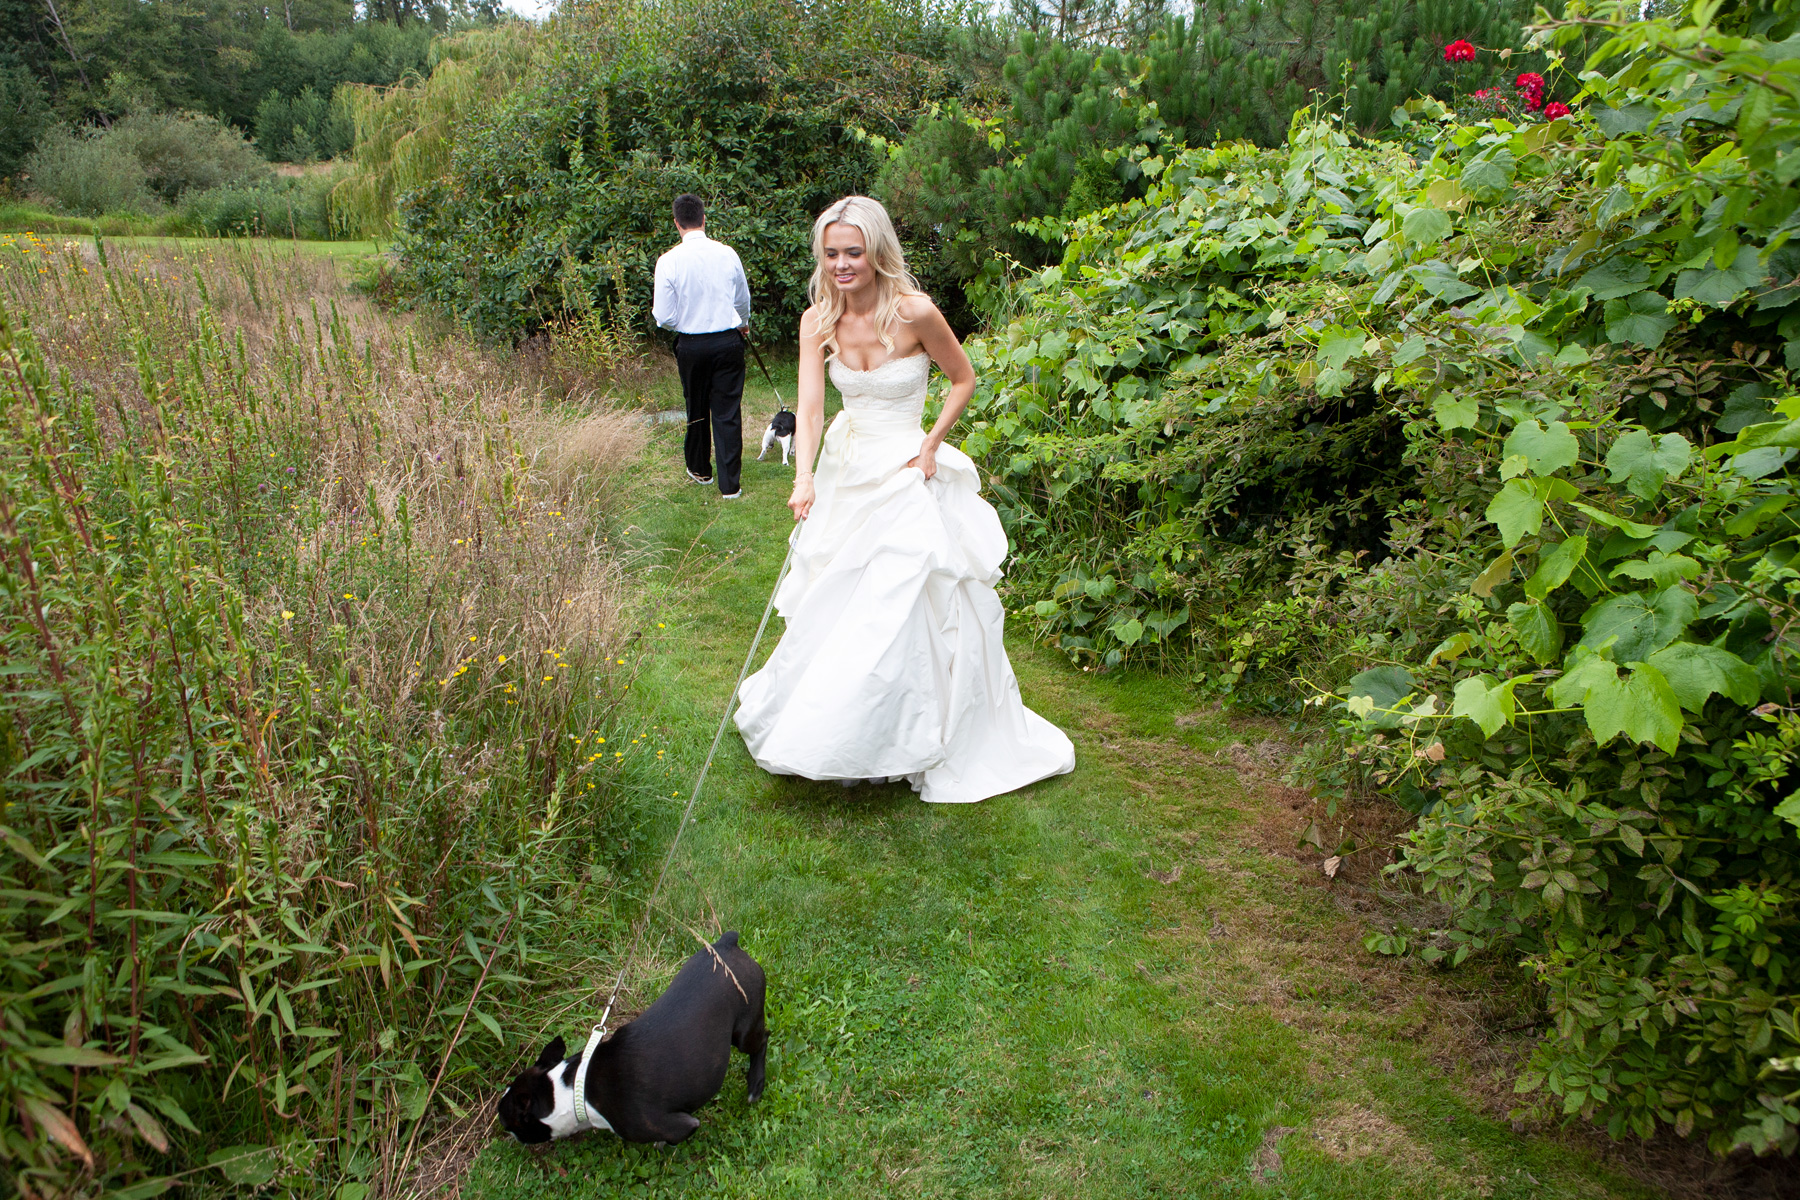 dogs-at-weddings-boxer-funny-moments-jamie1387.jpg